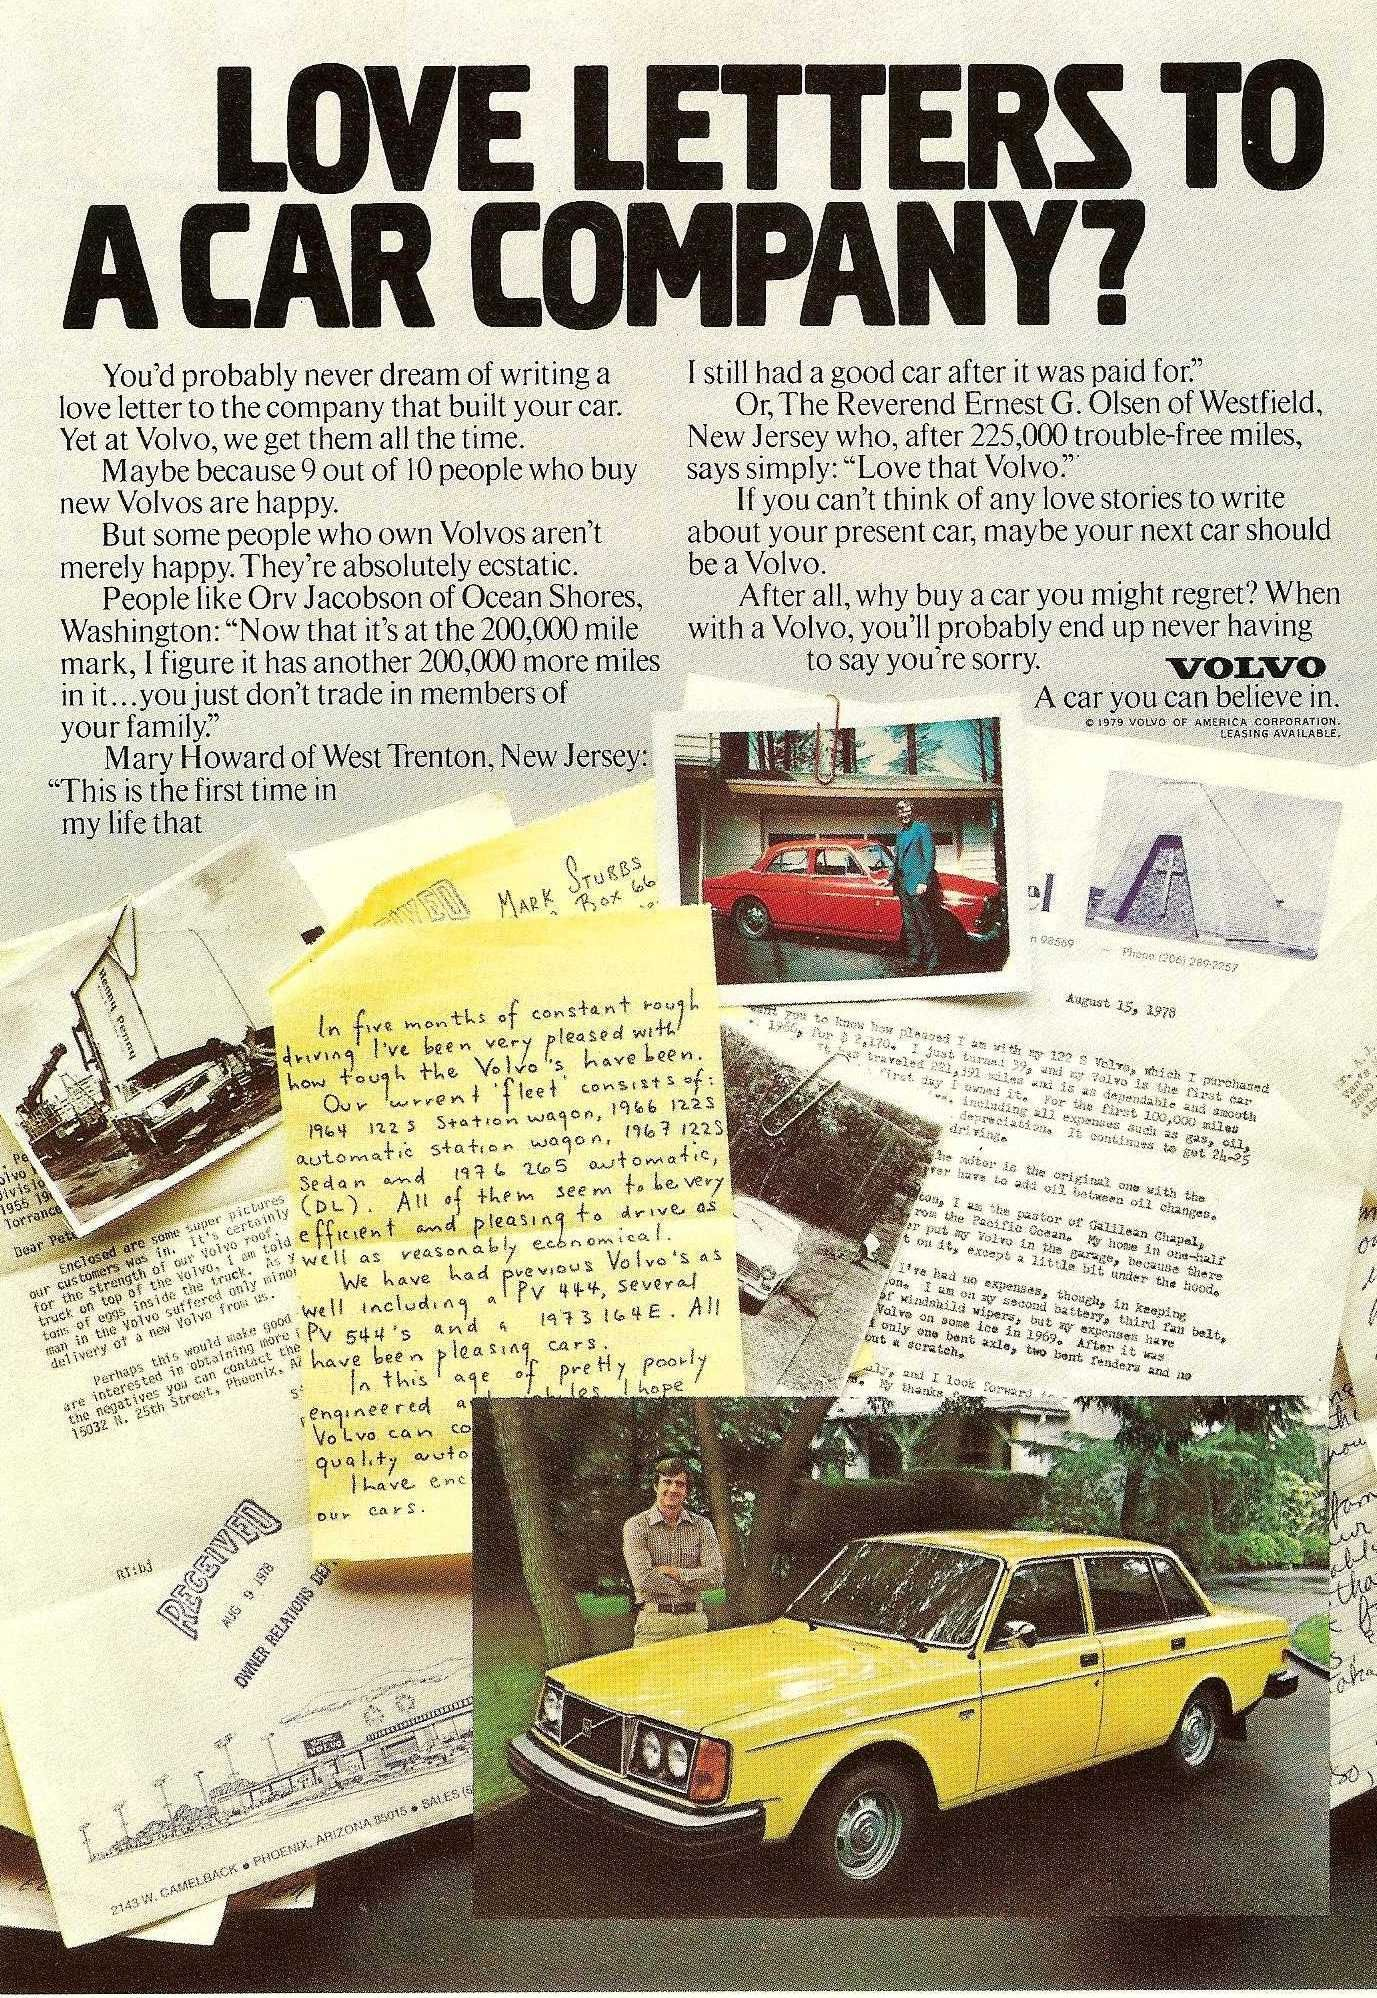 1979 Volvo 240 Ad: Love Letters to a Car Company? | Models, Volvo ad and Cars